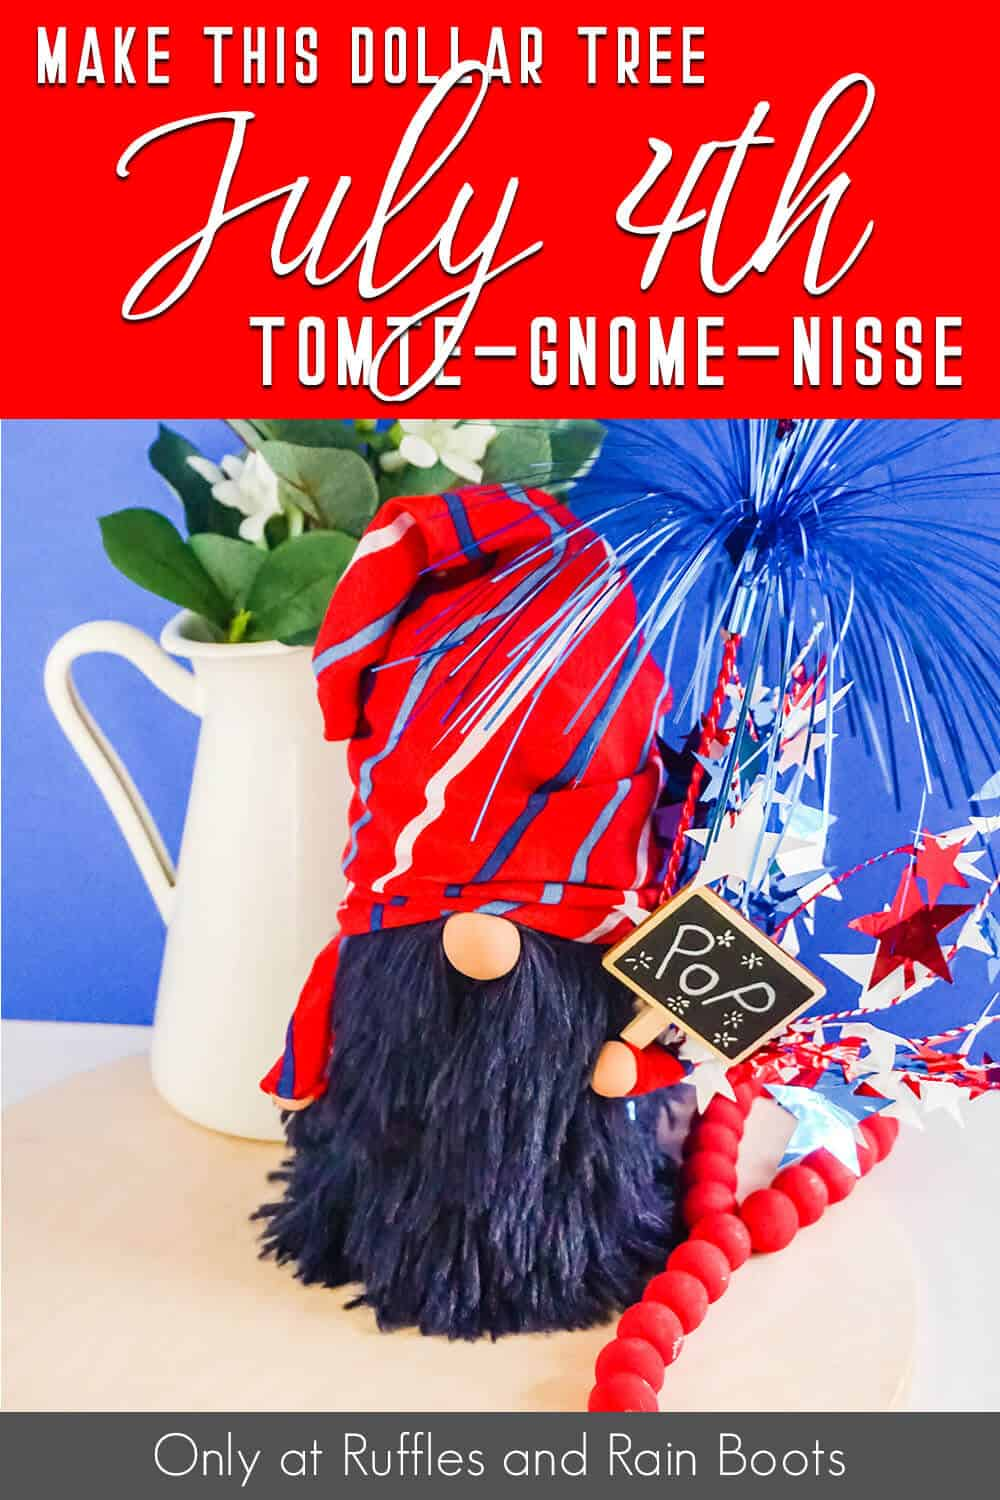 dollar tree gnome for july 4th from dollar tree supplies with text which reads make this dollar tree july 4th tomte gnome nisse